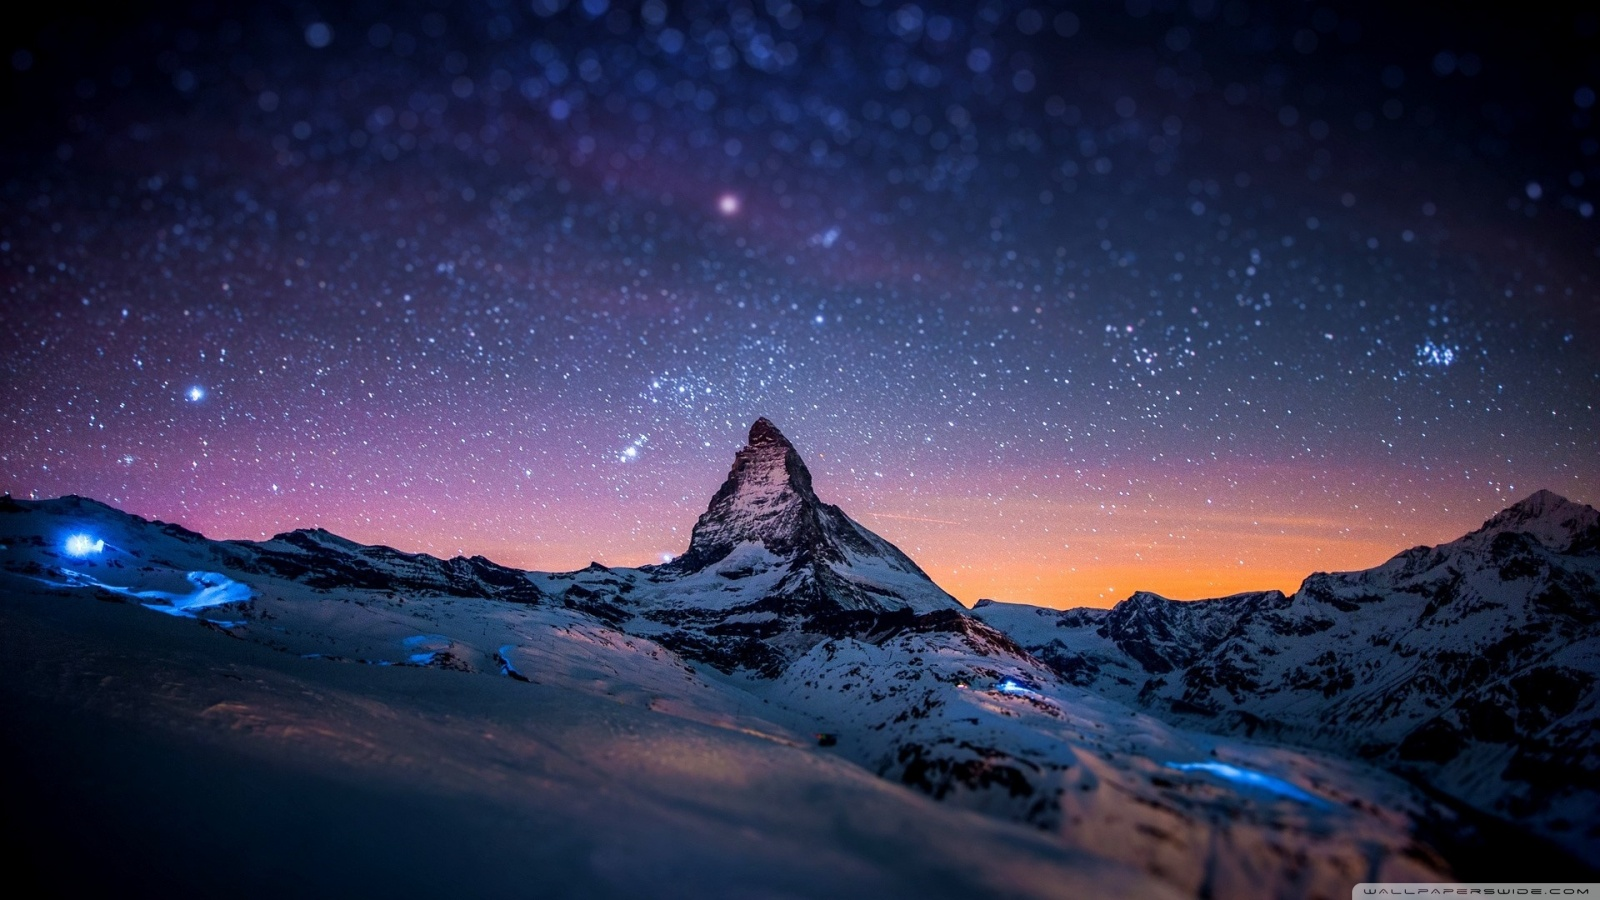 Mountain At Night Wallpaper